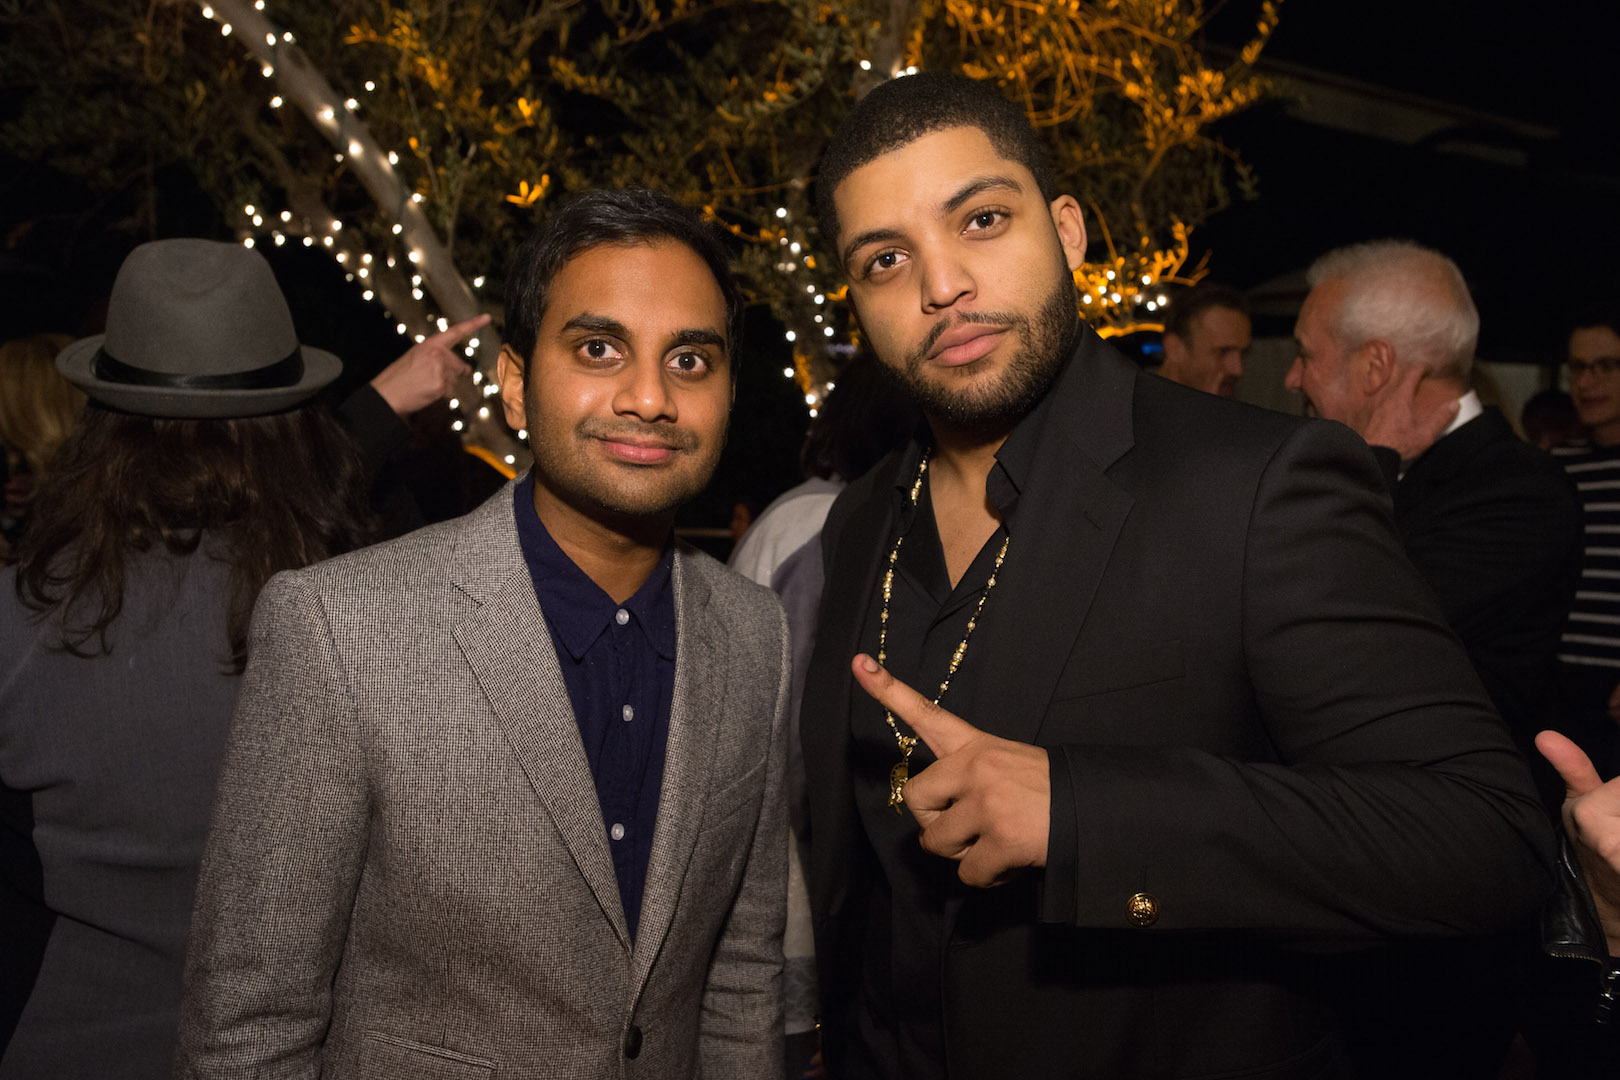 Aziz Ansari and O'She Jackson Jr. attend a party for the announcement of Corinne Foxx as Miss Golden Globe 2016 for the 73rd Annual Golden Globe Awards set to air live on NBC on January 10, 2016.  President Lorenzo Soria made the announcement on November 17, 2015 from Ysabel Restaurant in West Hollywood.